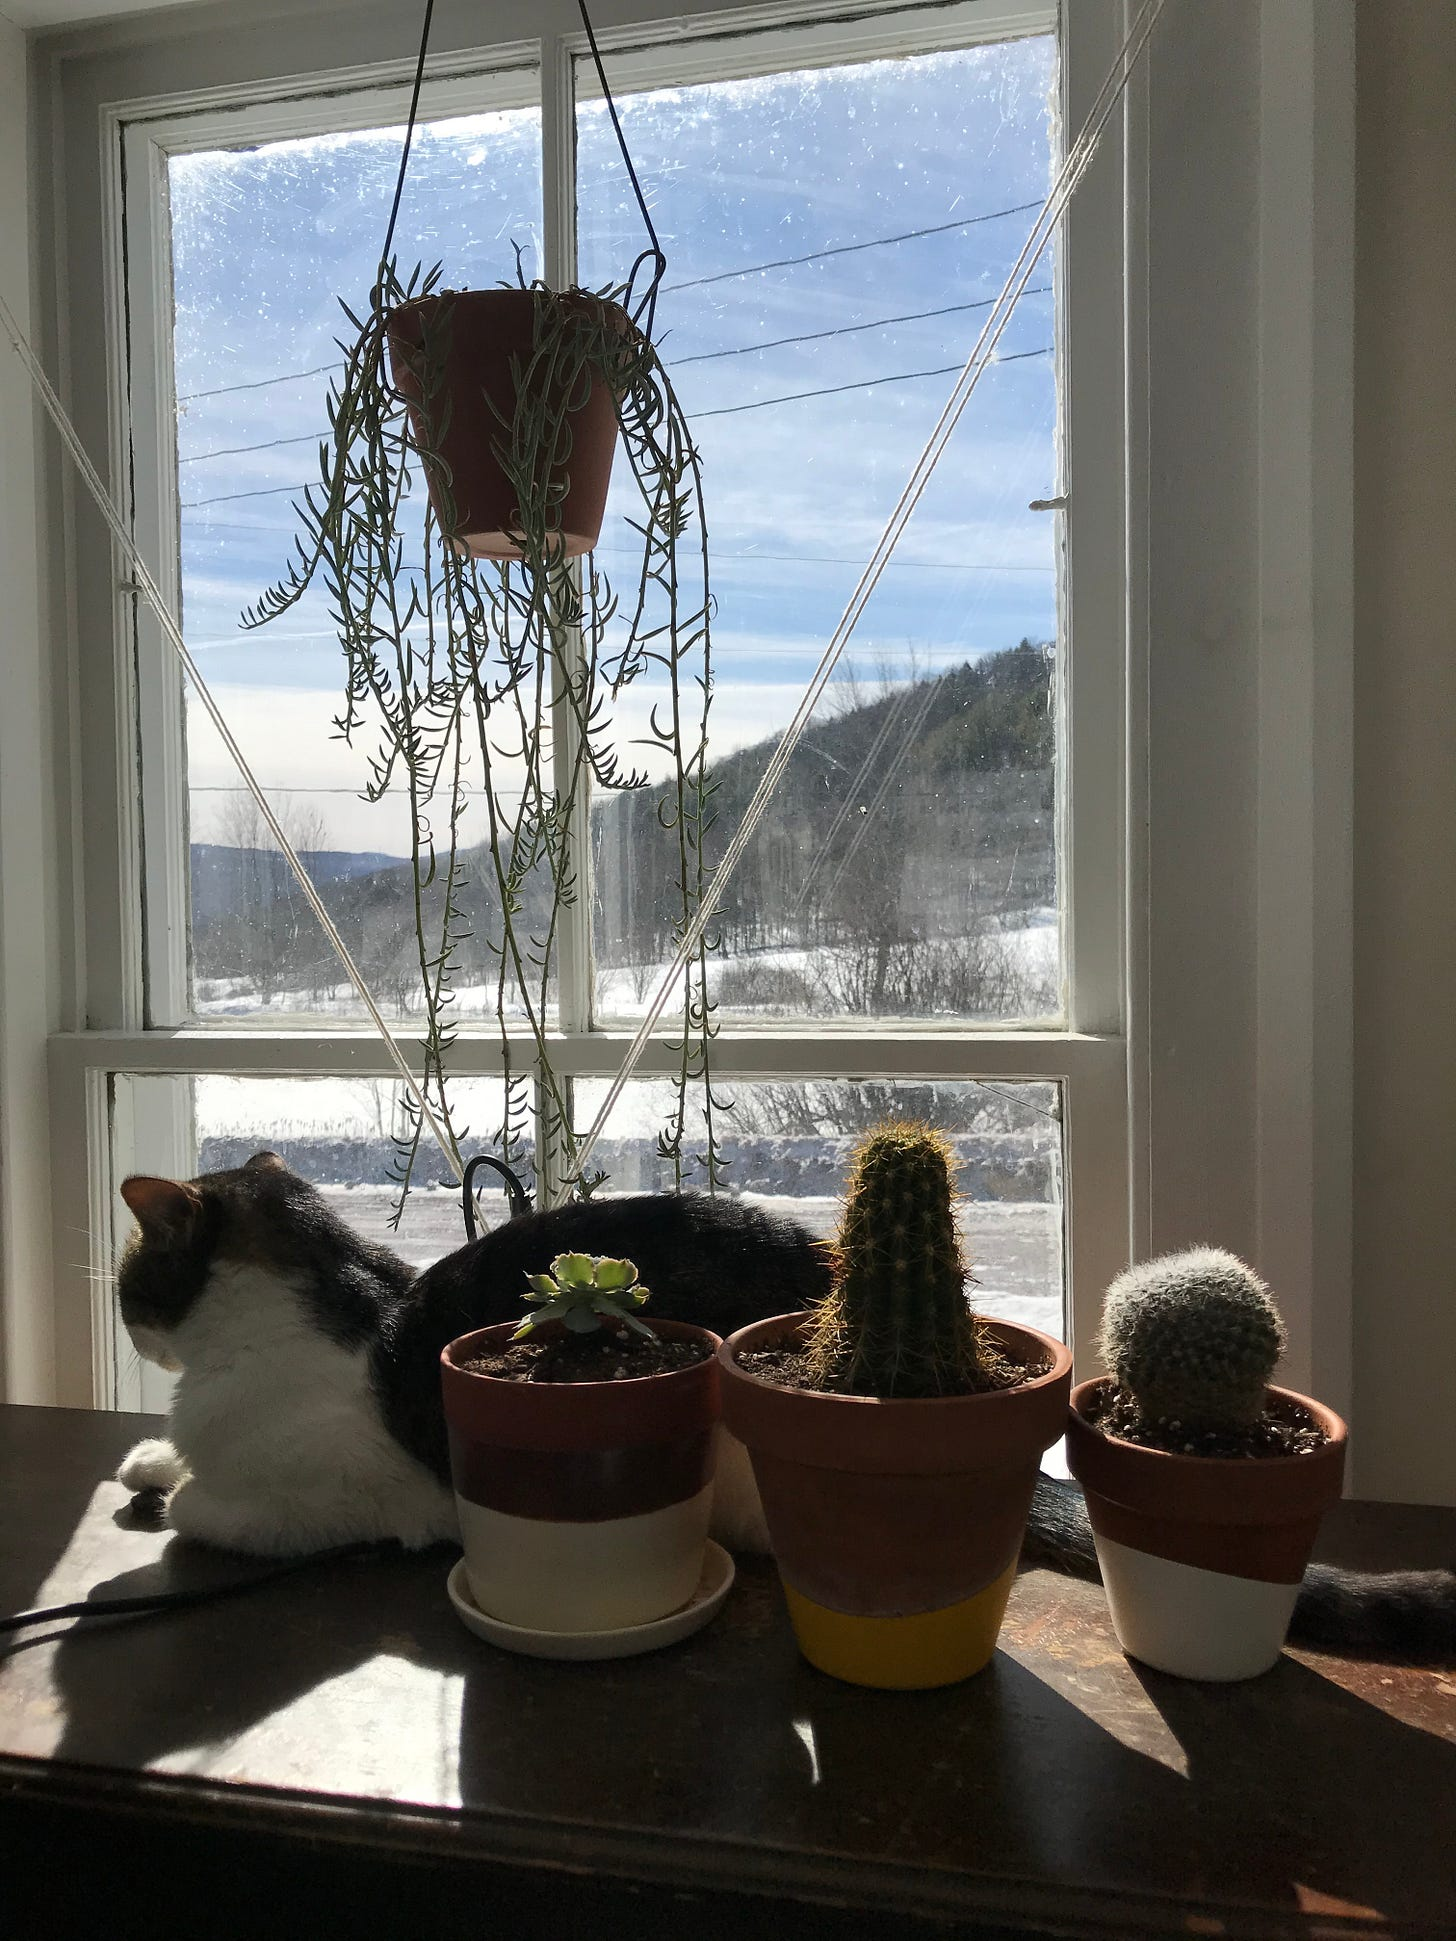 A cat and several succulents in the sun